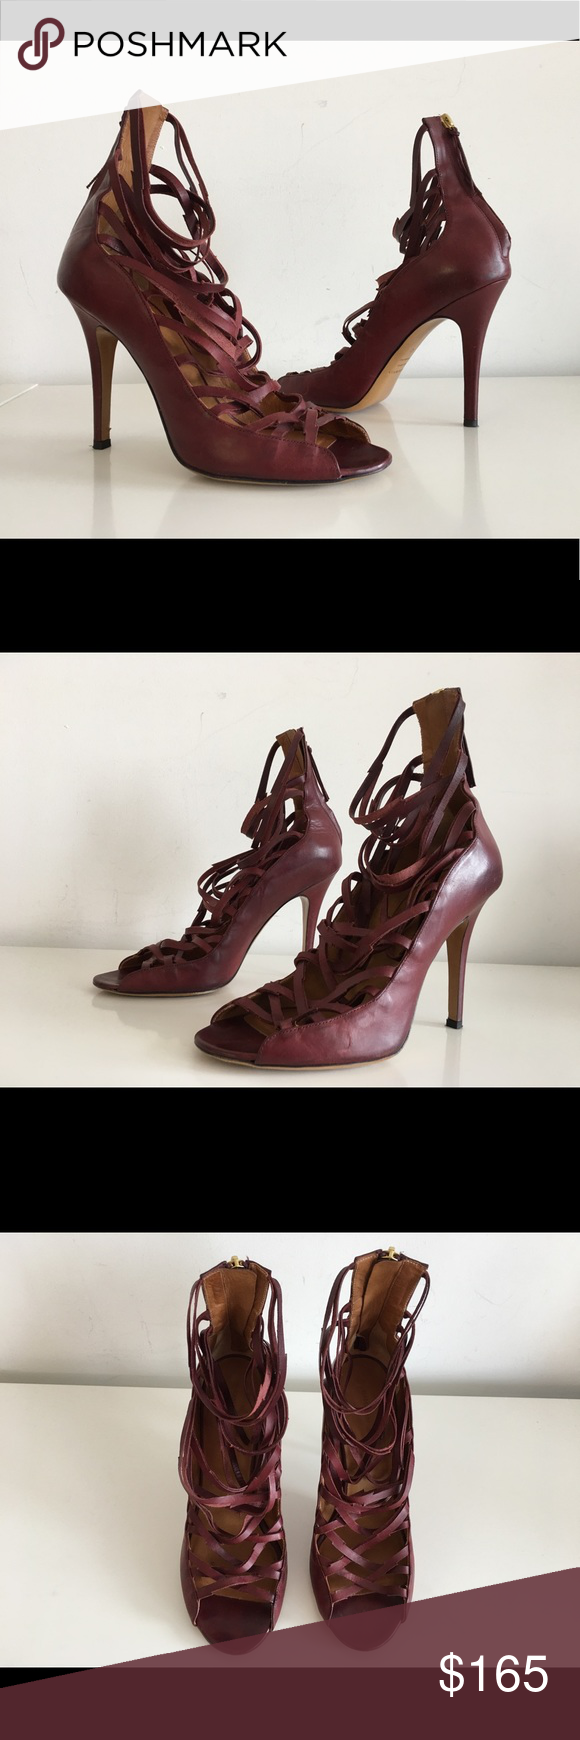 Isabel Marant Paw Lace Up Strappy Sandals In Brown Stiletto Heels Heels Stiletto